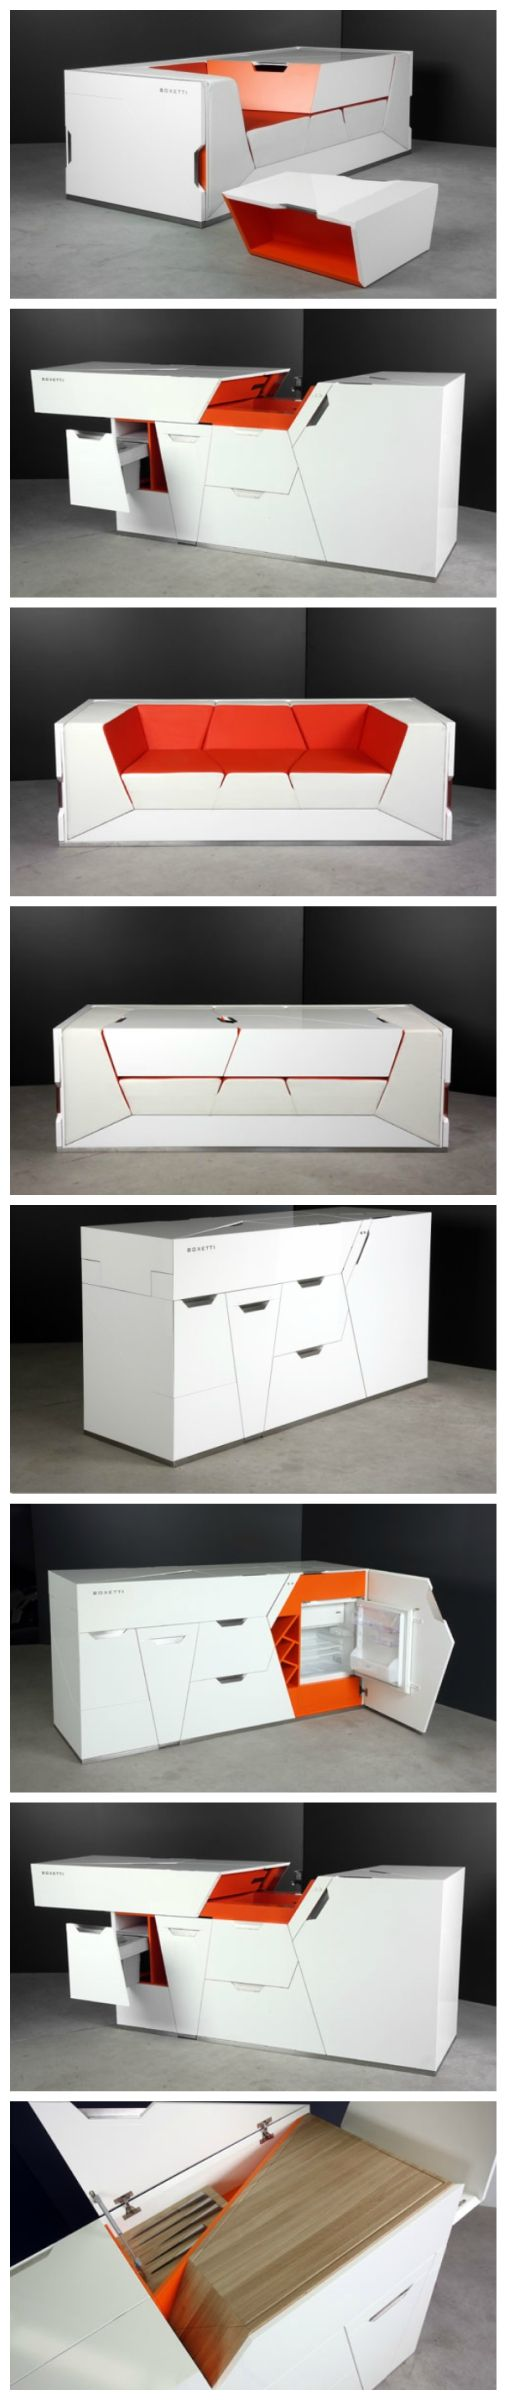 A Sci-fi Looking Furniture That Should Be Featured In Transformers